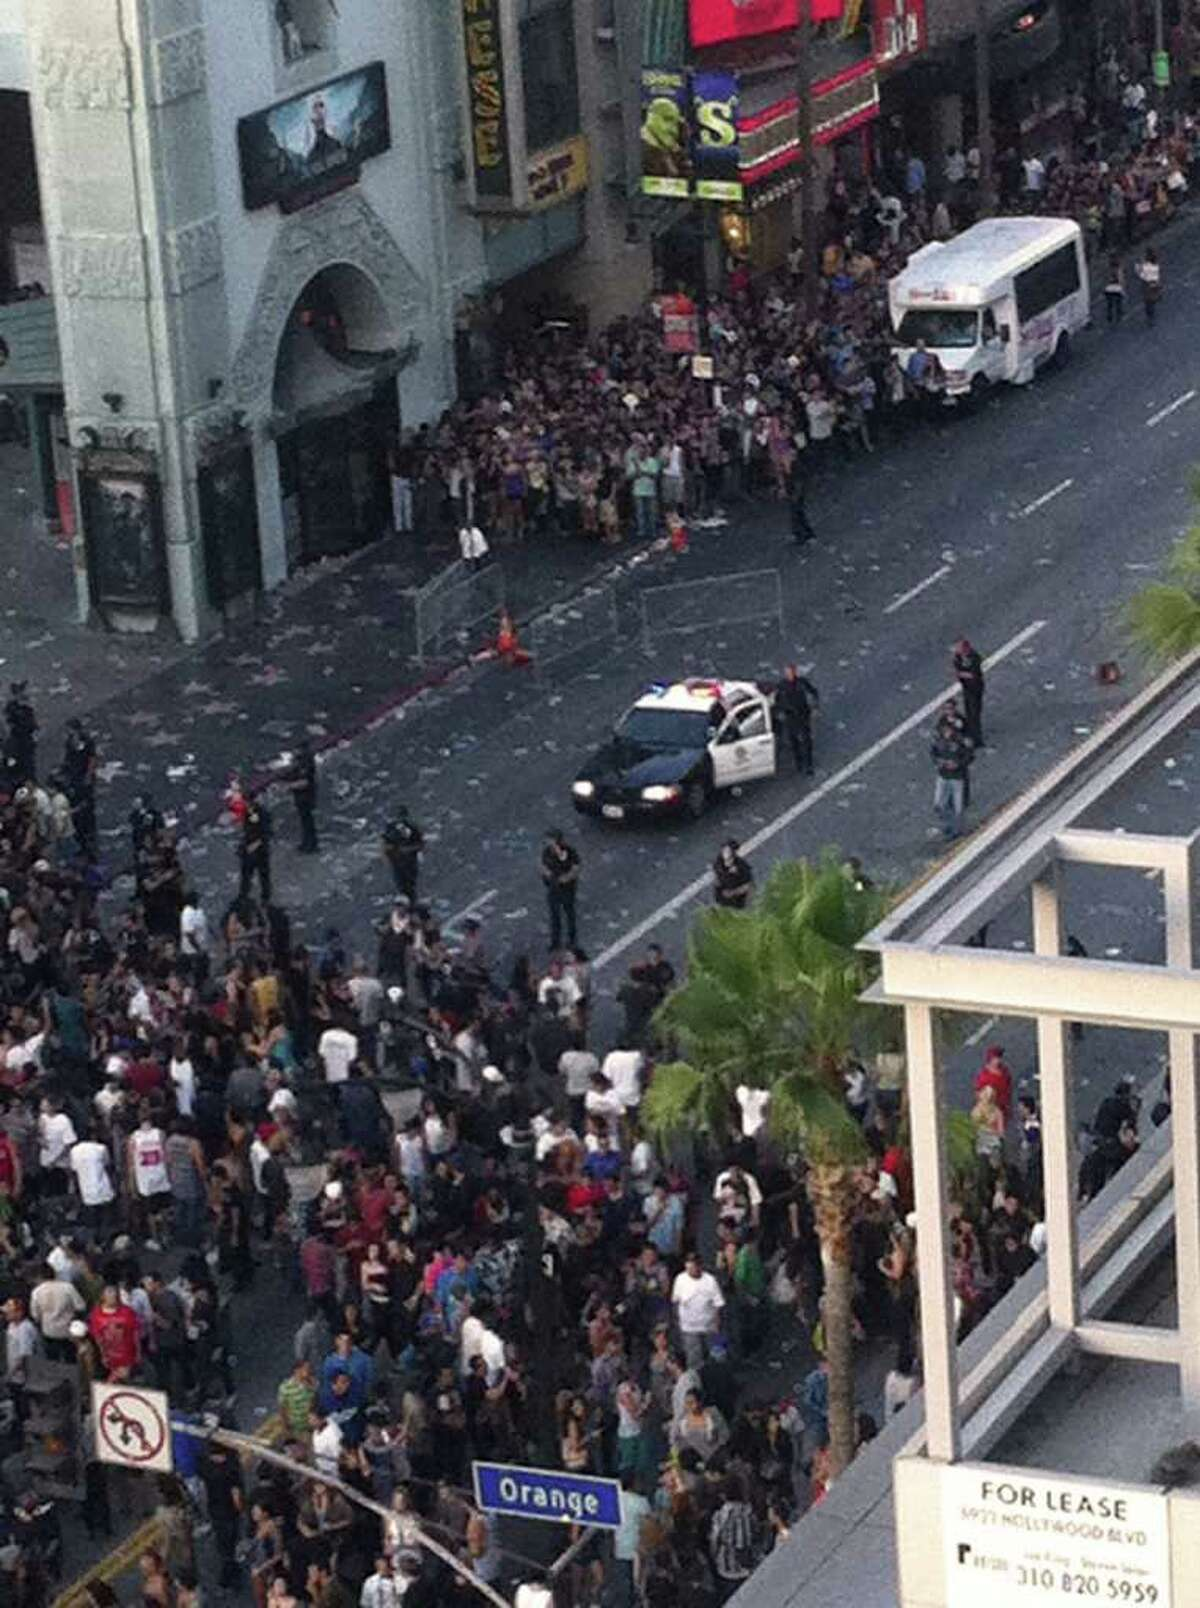 Police hold back a crowd outside Grauman's Chinese Theater in the Hollywood section of Los Angeles on Wednesday after a crowd became unruly outside the Hollywood film premiere of a documentary about the Electric Daisy Carnival rave, throwing bottles and vandalizing cars and refusing orders to disperse after they were forced to leave an overcrowded theater, authorities said.